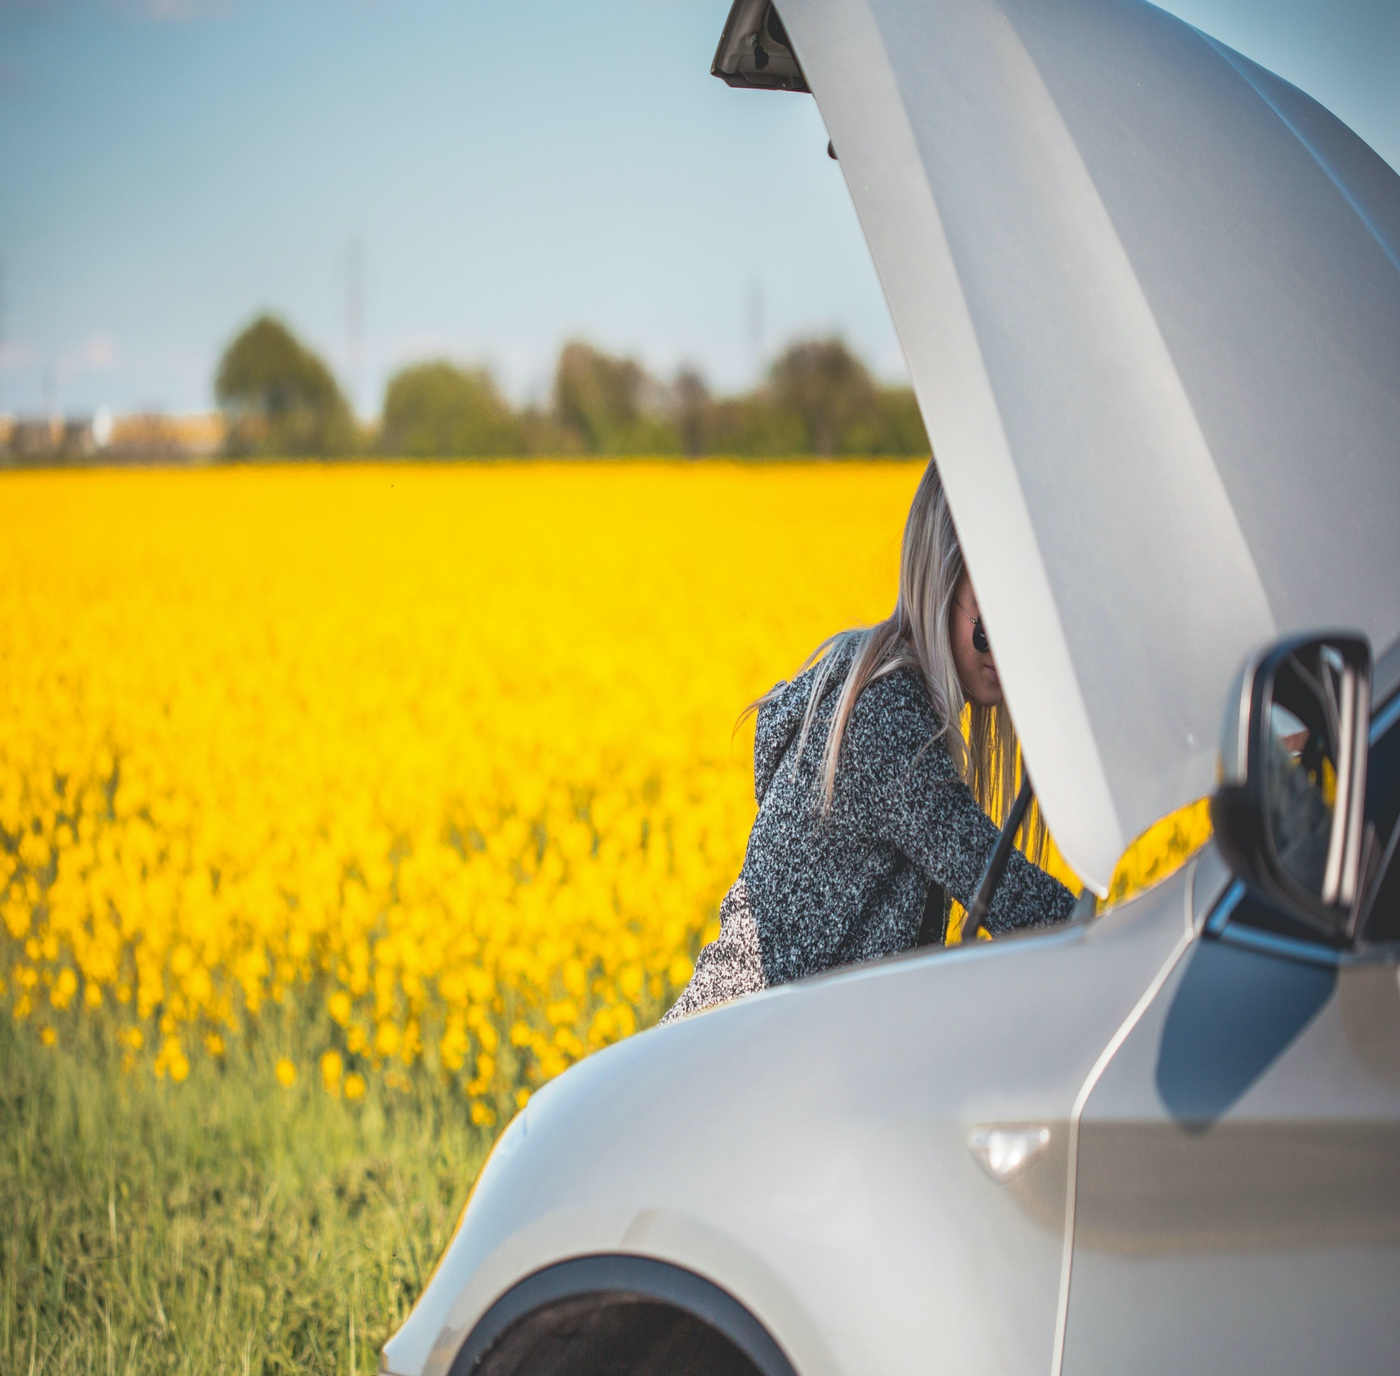 young-woman-trying-to-check-and-repair-her-broken-car-picjumbo-com 2350 2309